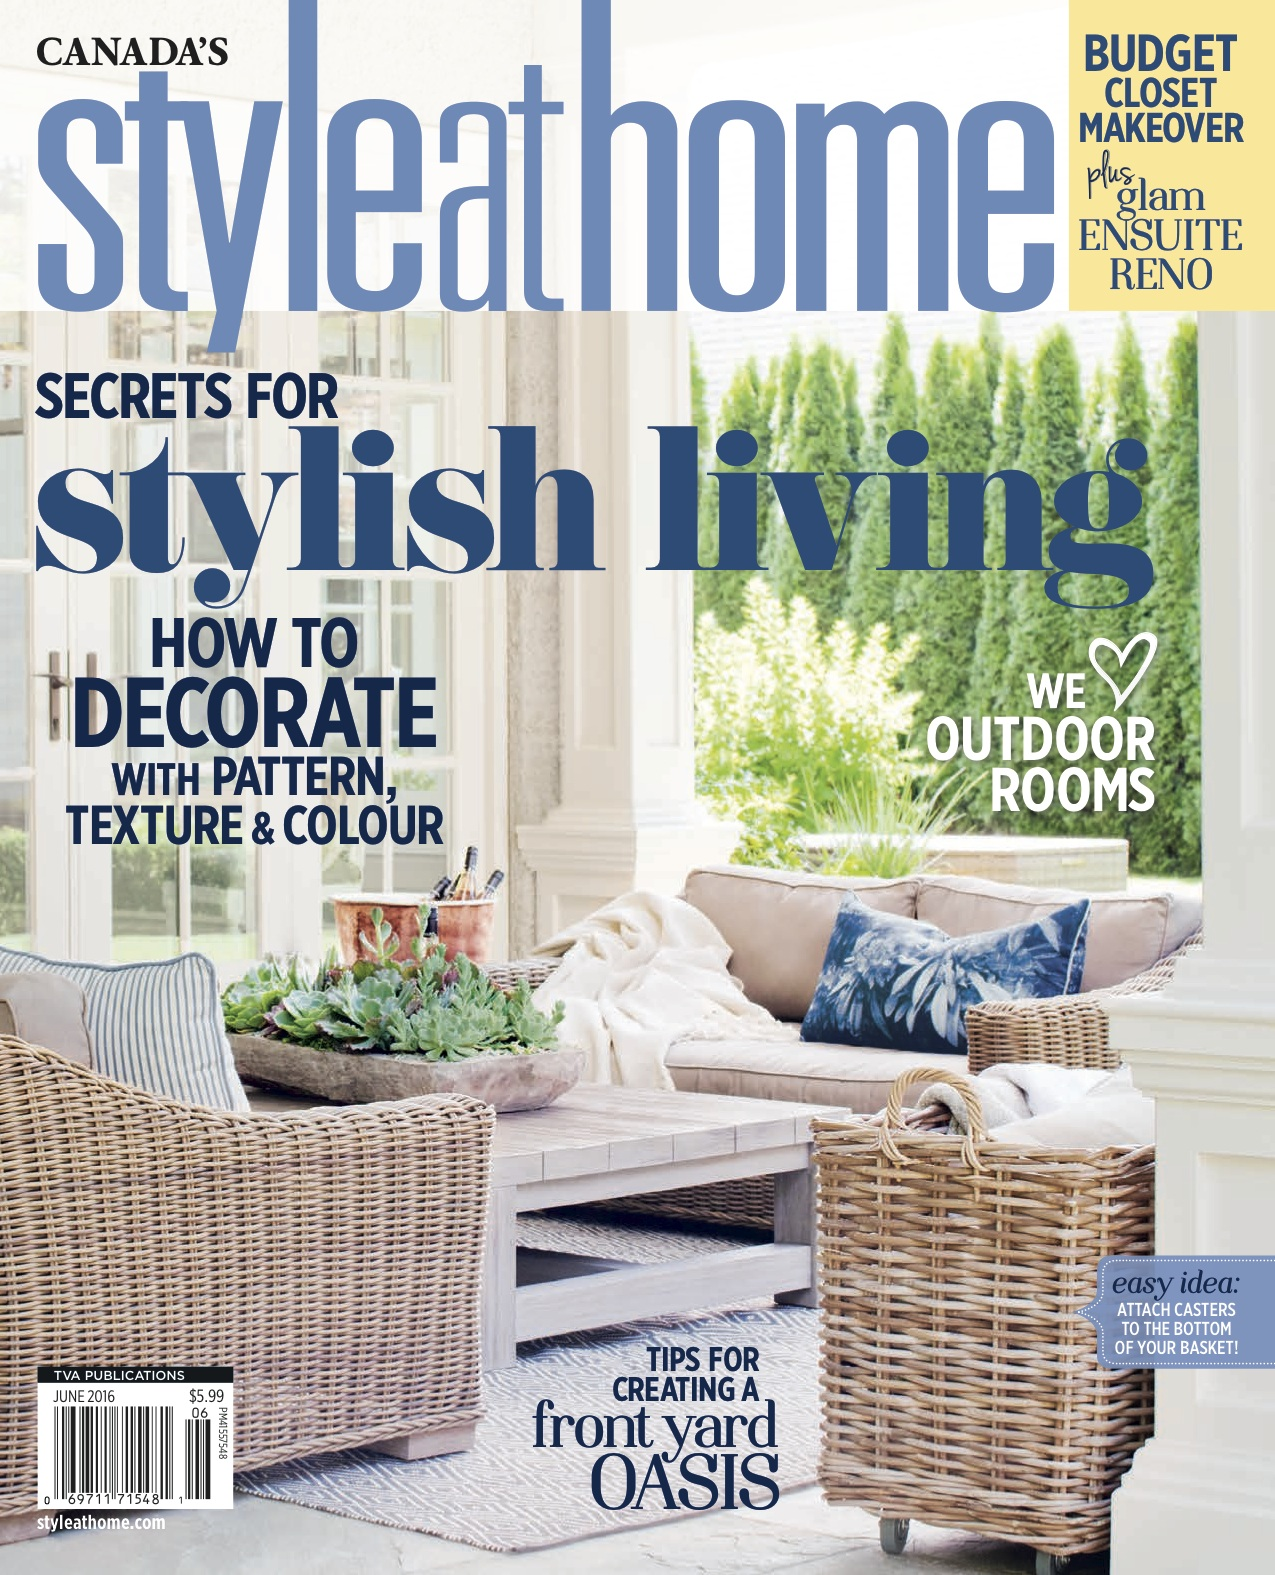 OUR HOME IN STYLE AT HOME MAGAZINE